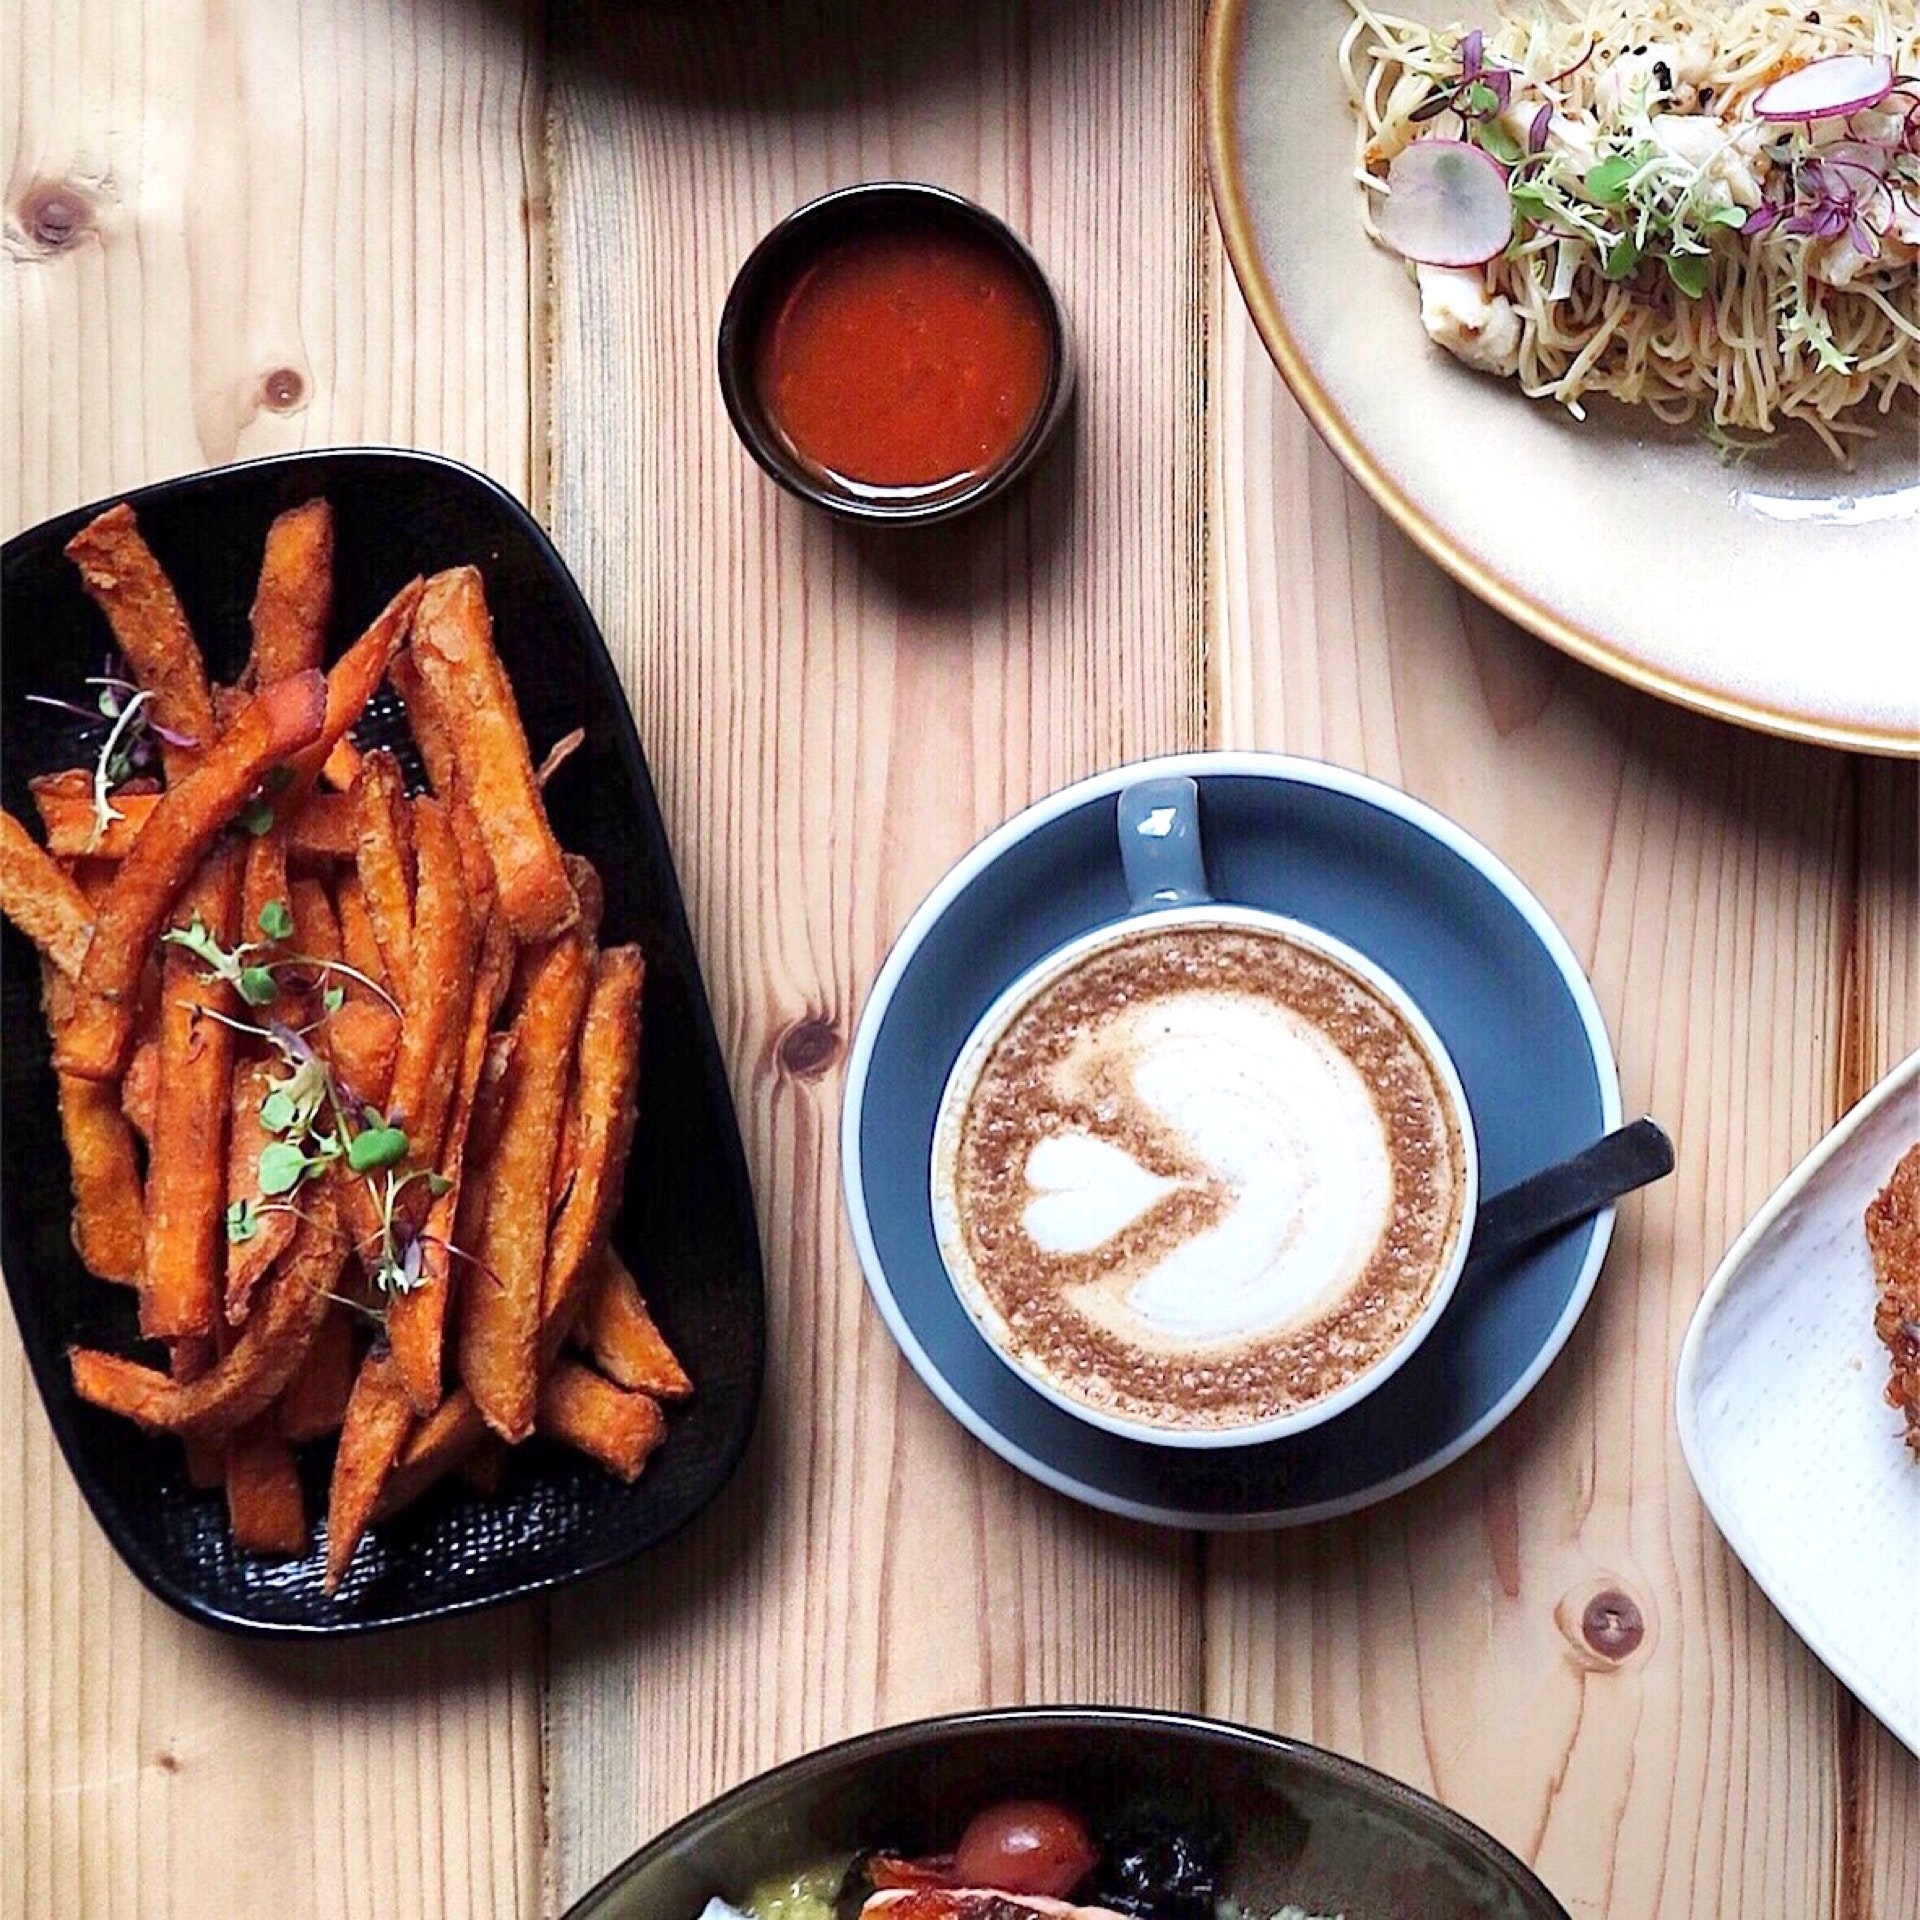 Sweet Potato Fries with Masala Seasoning [$11]